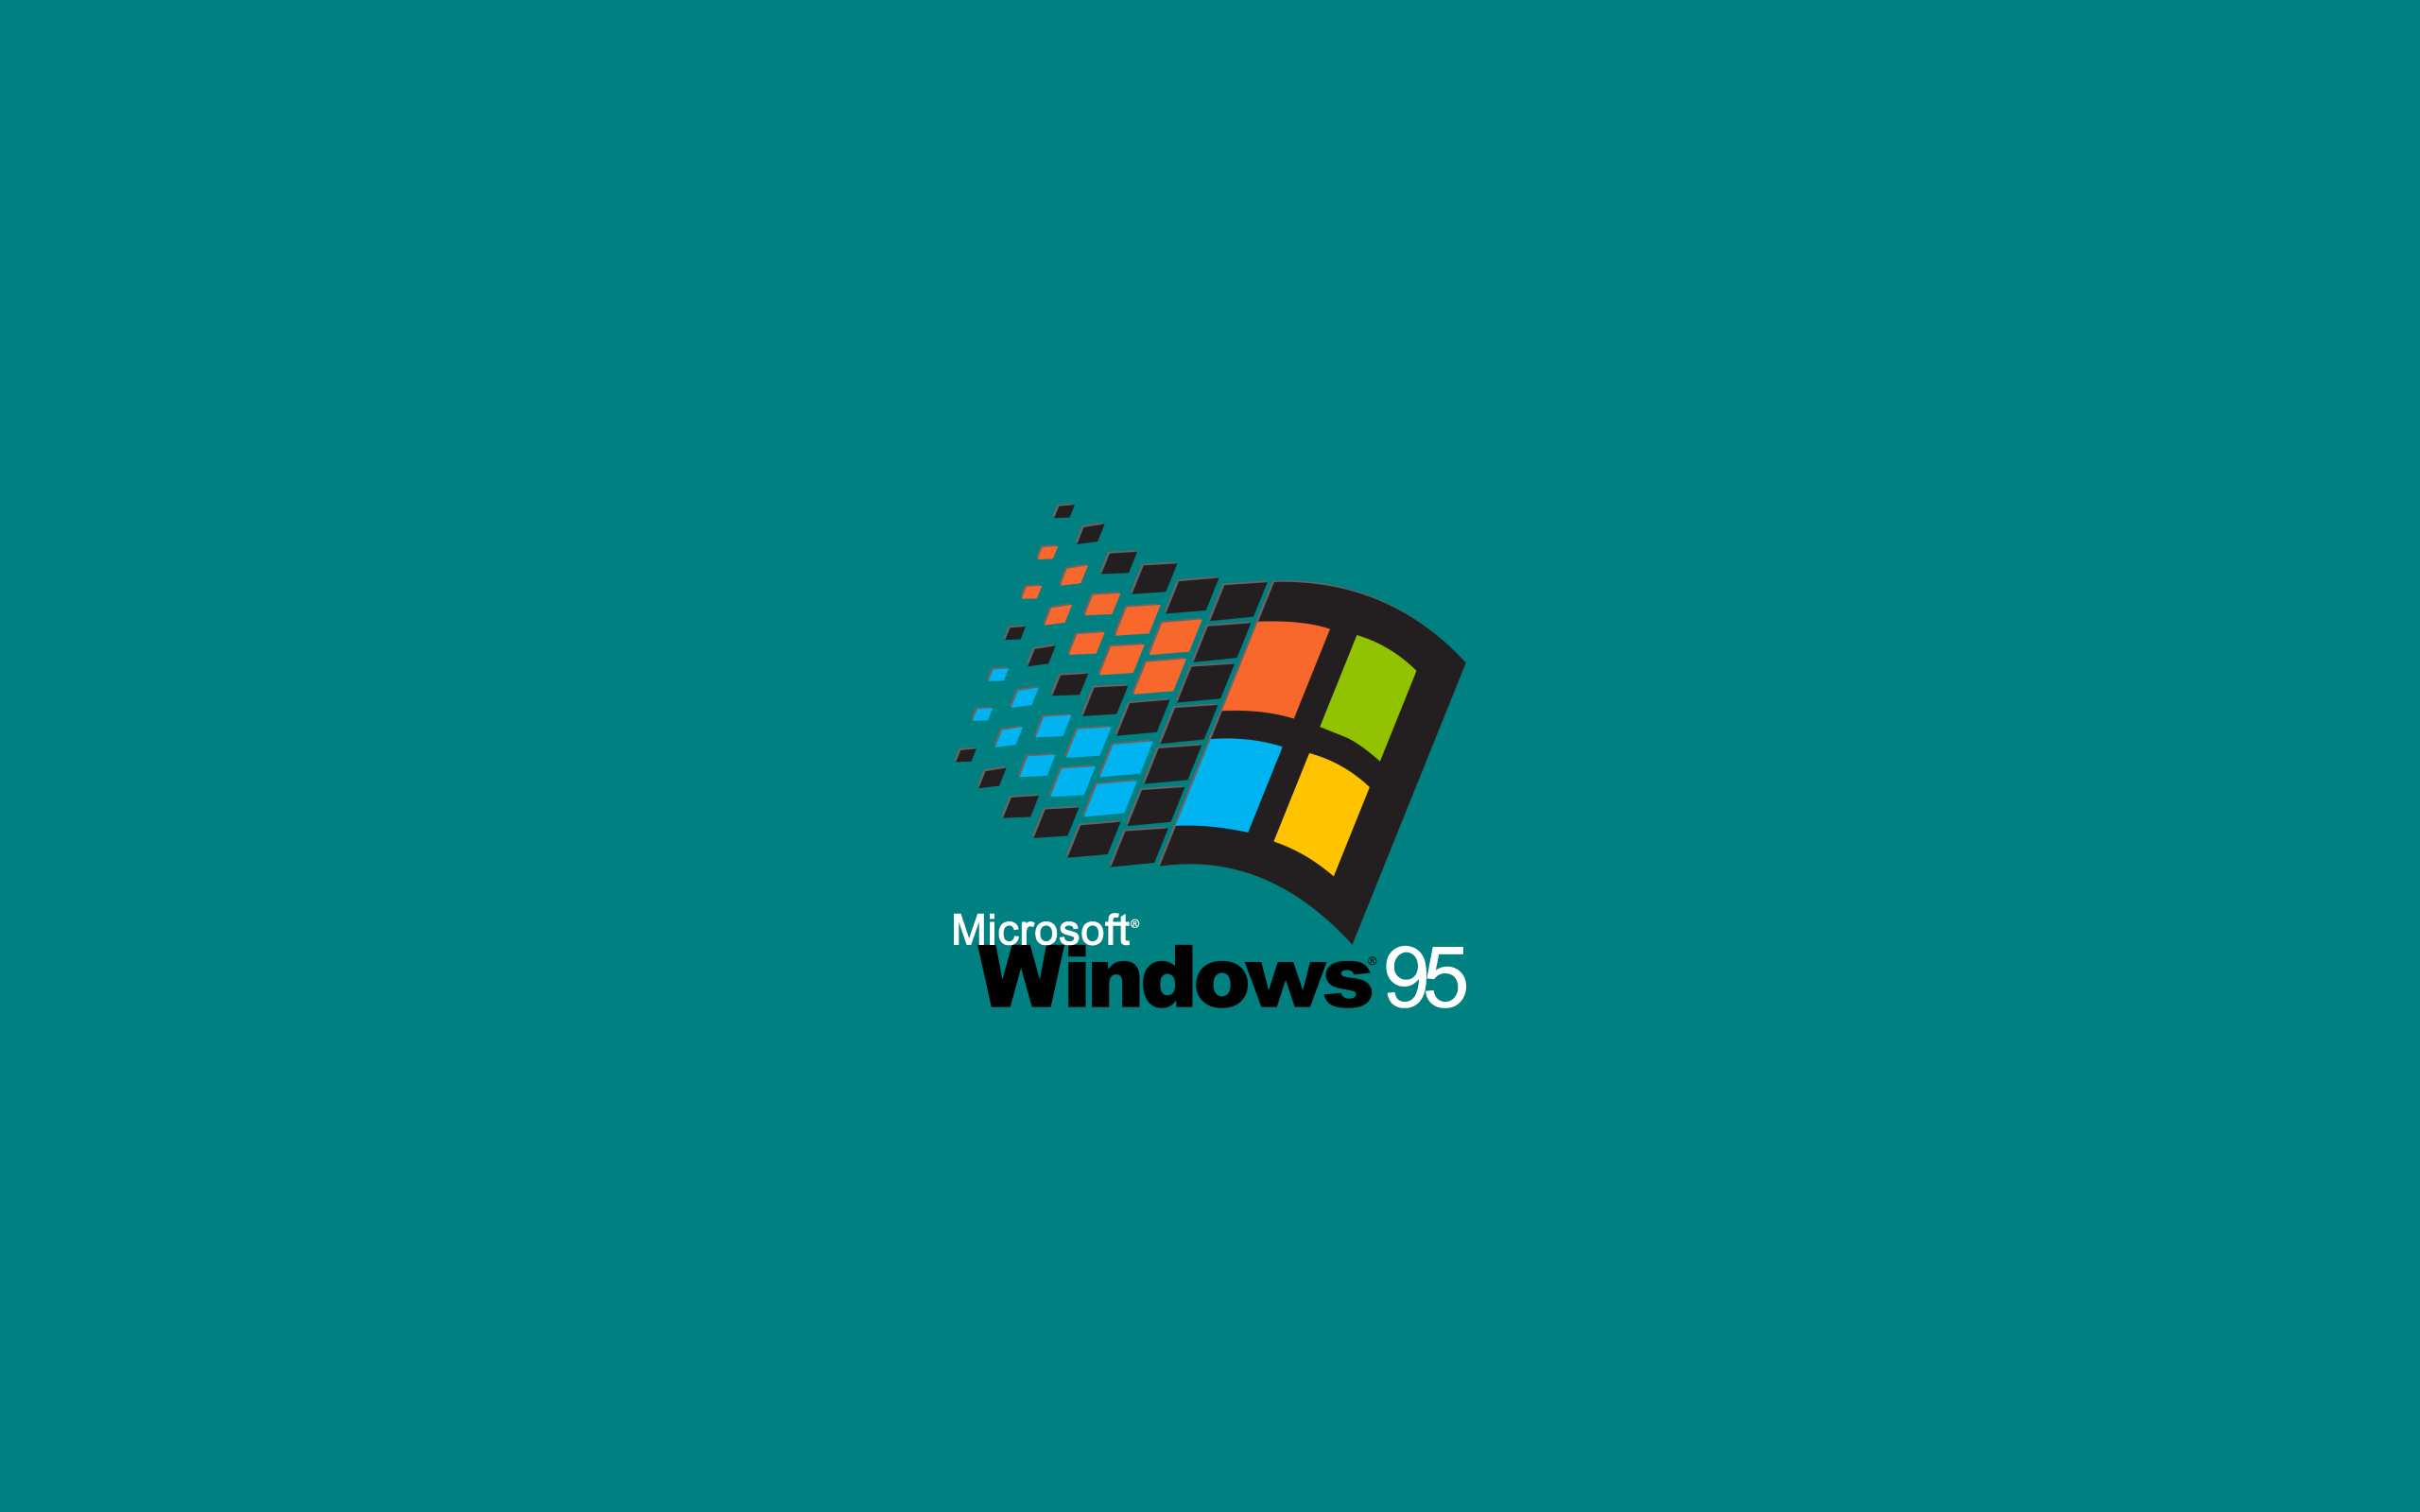 windows 95, hd computer, 4k wallpapers, images, backgrounds, photos